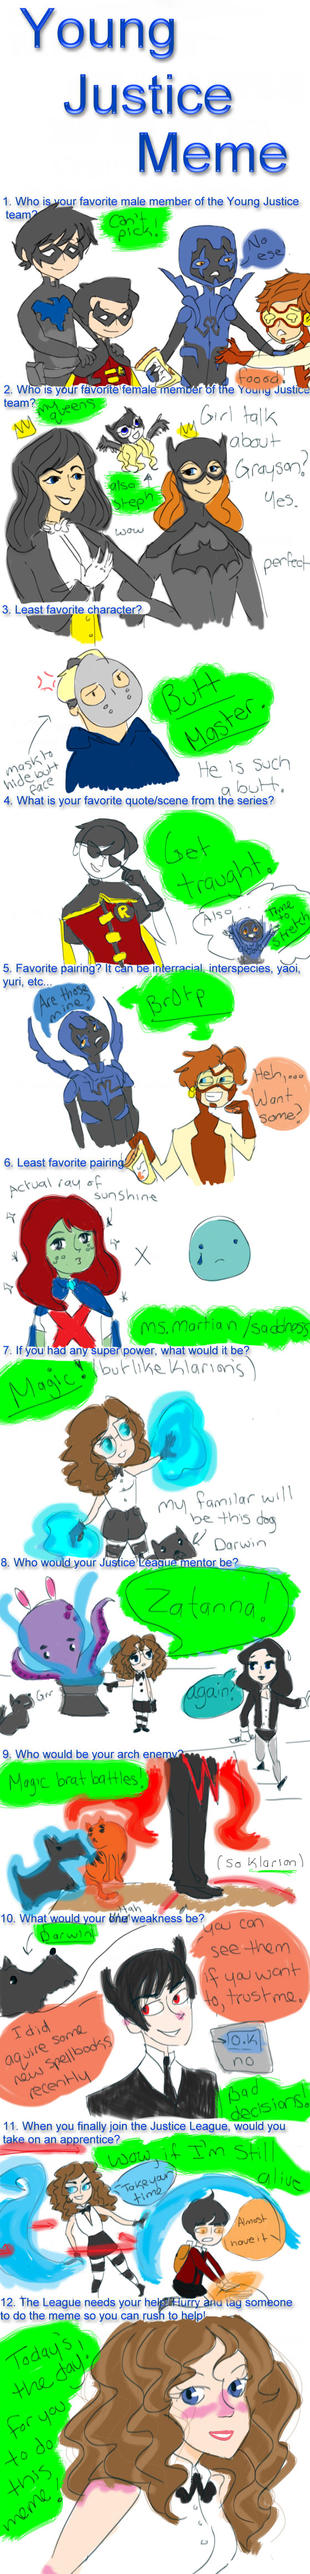 Young Justice Meme by bookpixie